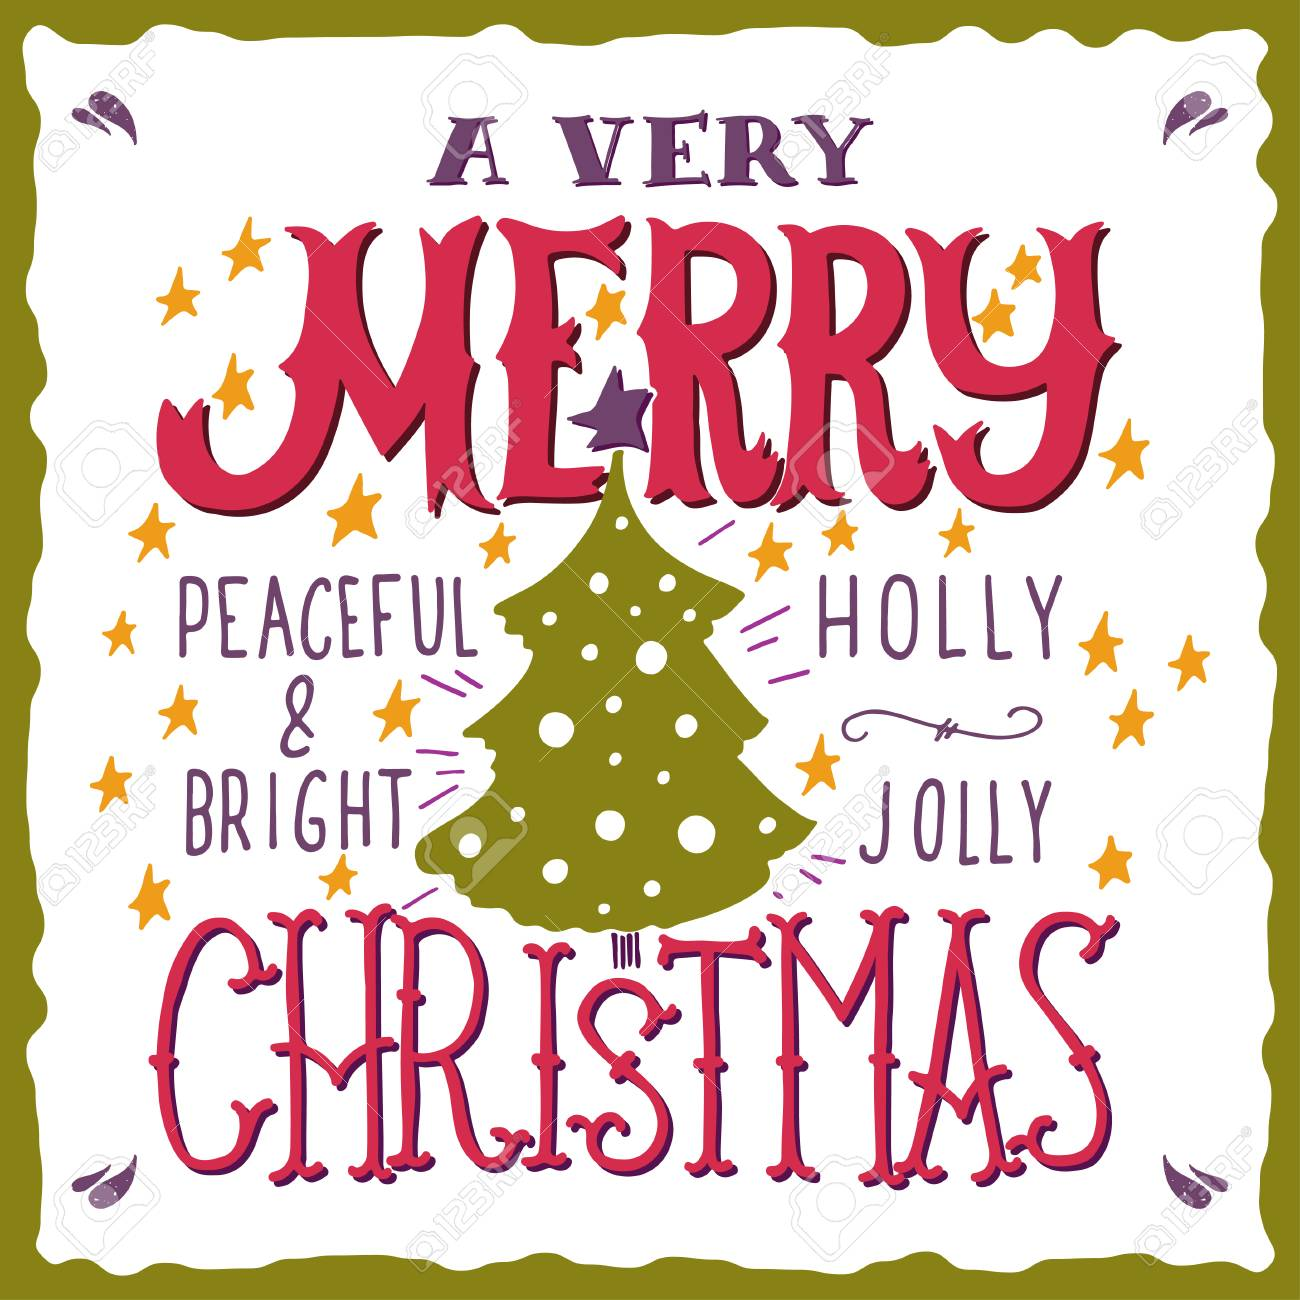 a very merry christmas peaceful and bright holly jolly quotes illustration with